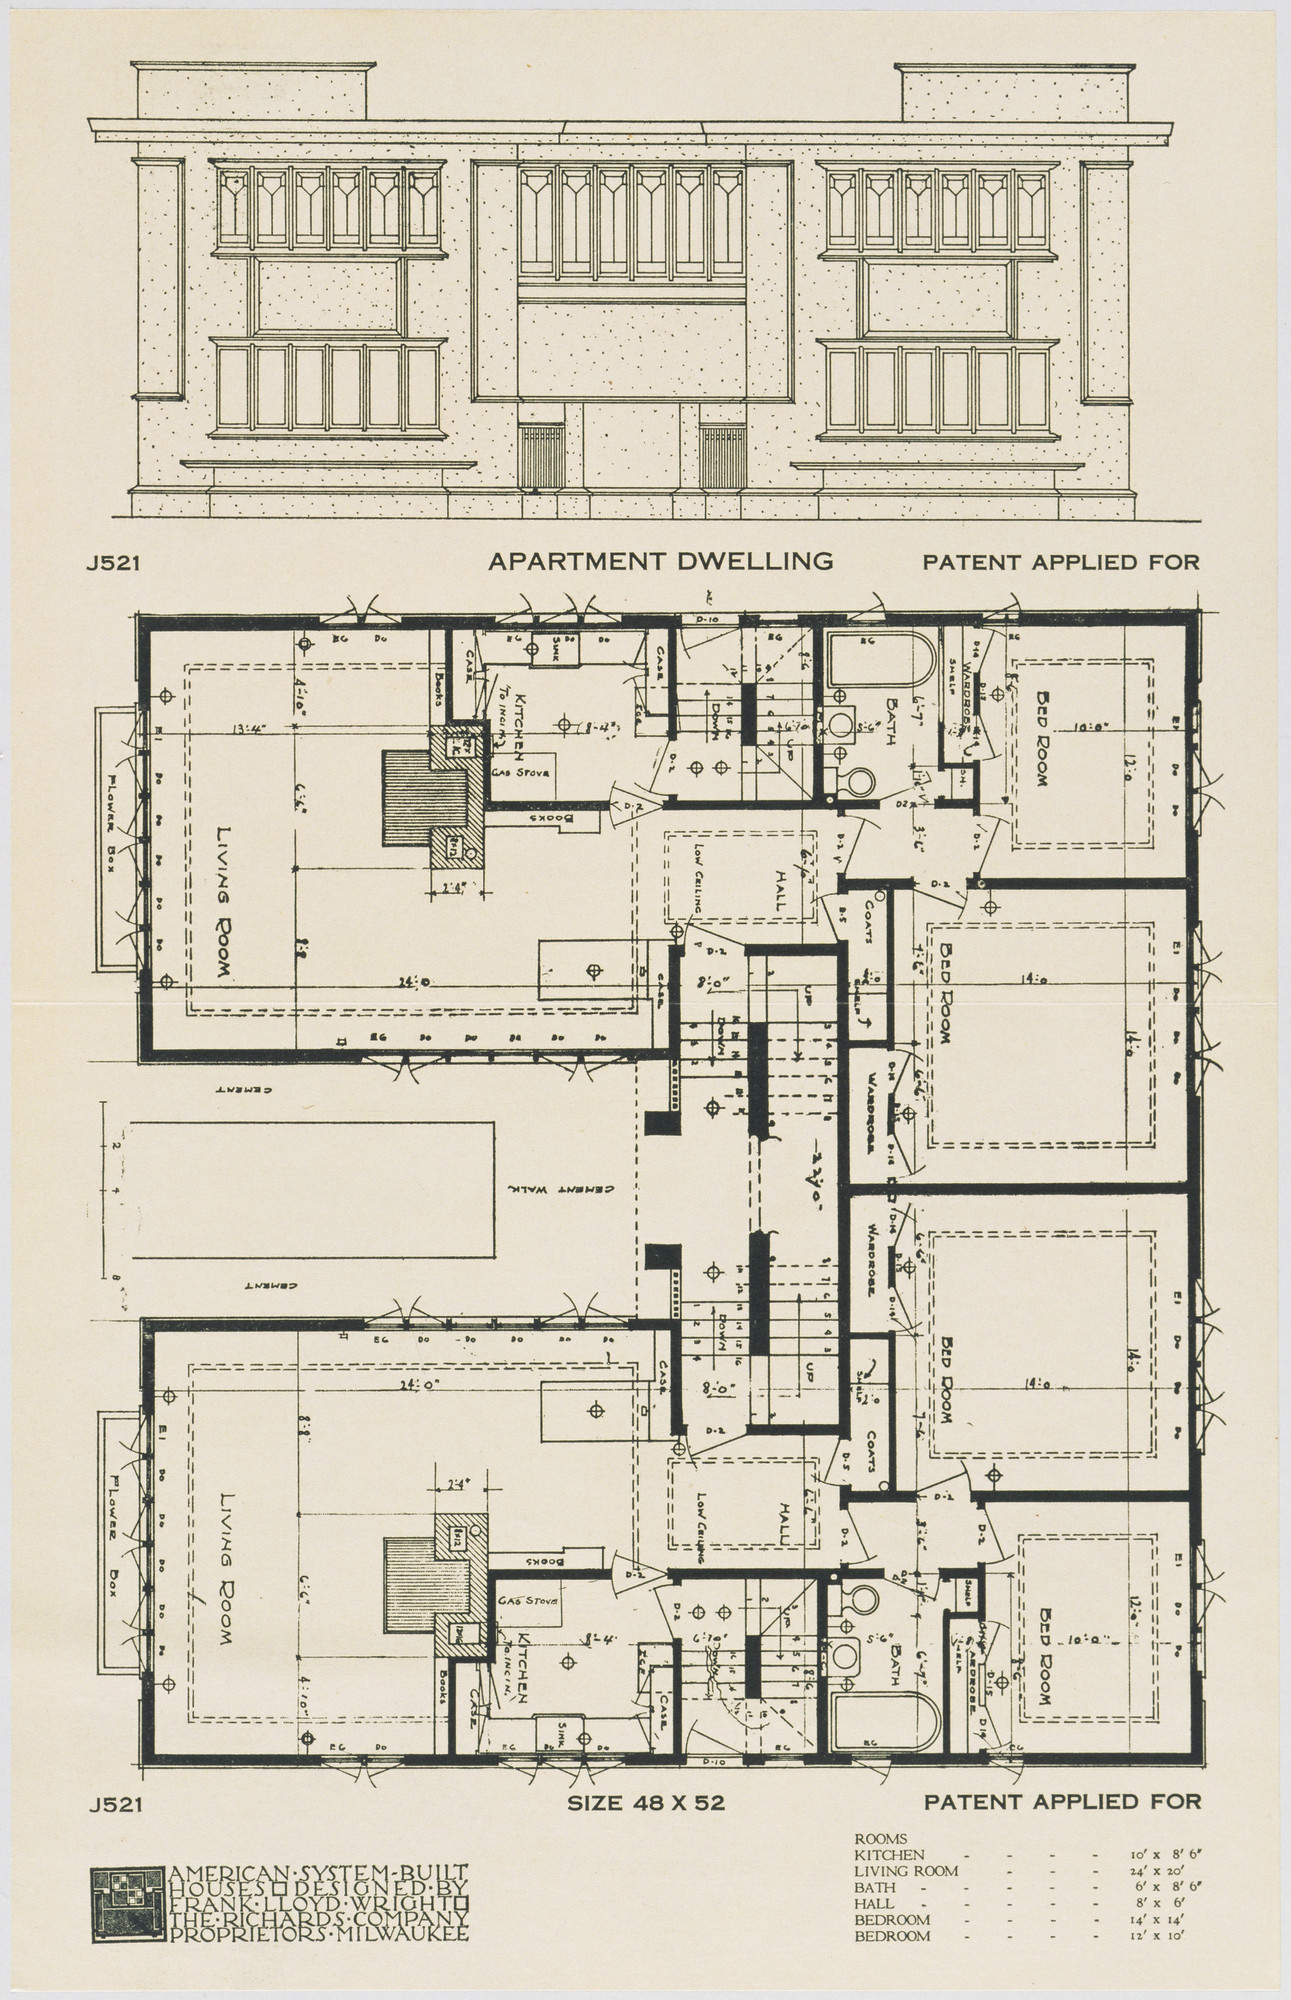 Frank Lloyd Wright American System Built Houses For The Richards Company Project Milwaukee Wisconsin Apartment Dwelling Plan And Elevation C 1915 17